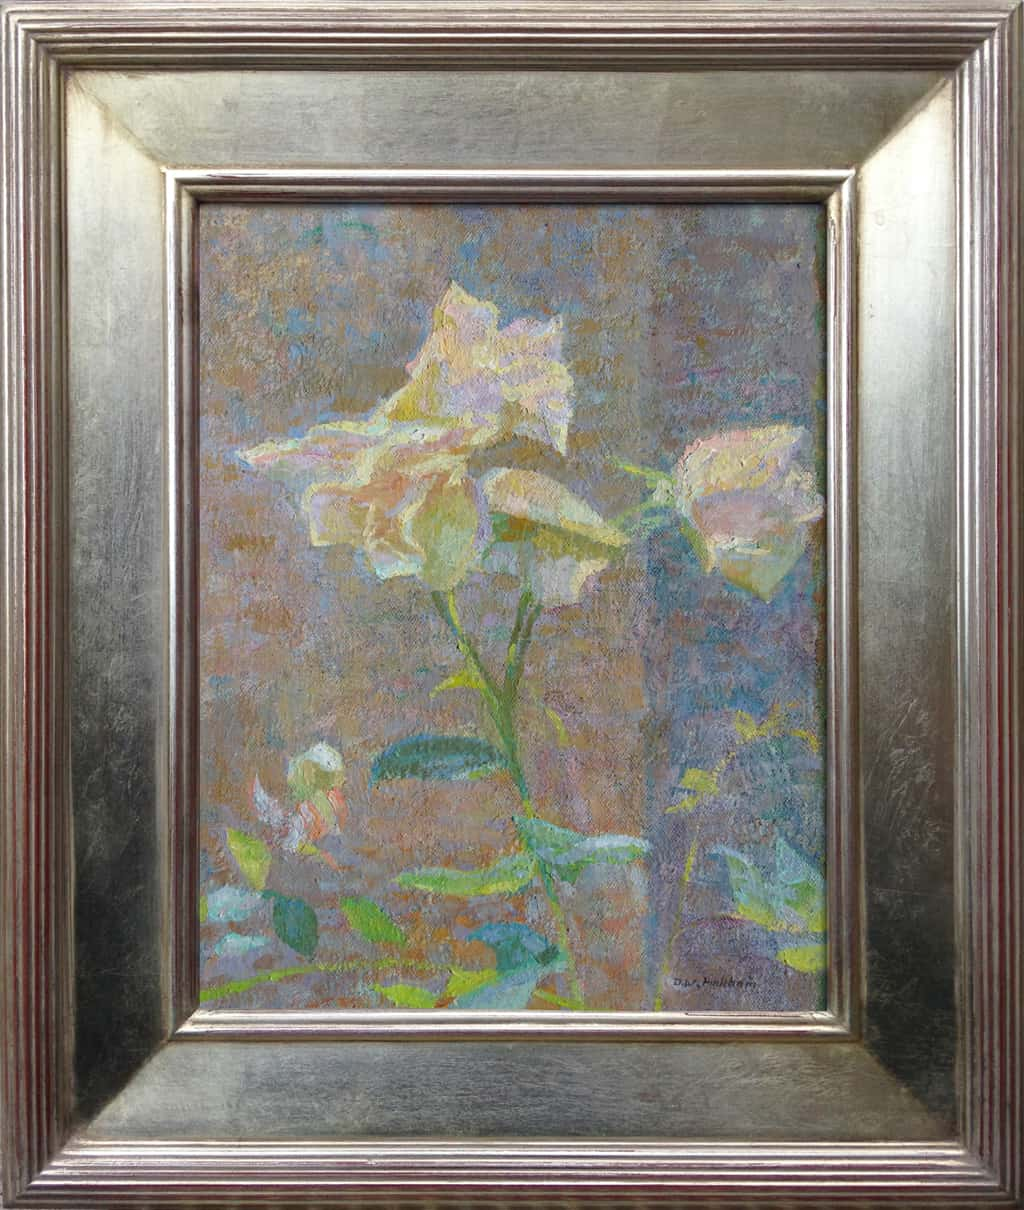 """American Legacy Fine Arts presents 'Sunlight Shimmer'"""" a painting by Daniel W. Pinkham."""